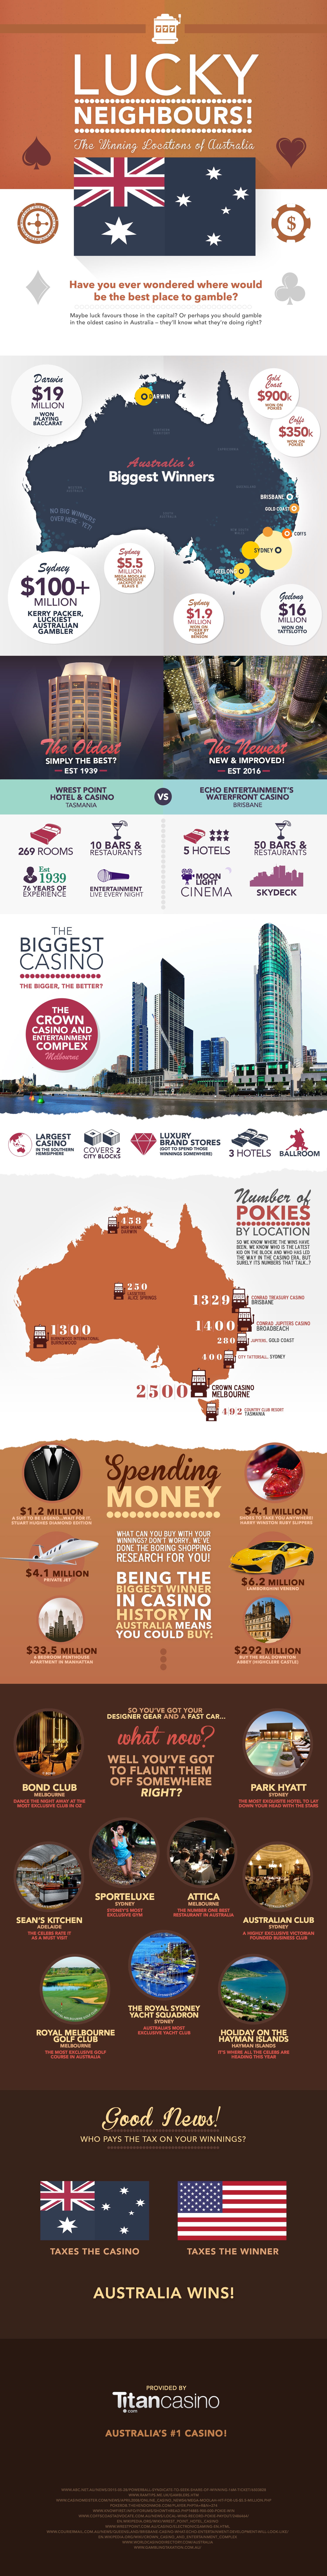 The Luckiest Places for Australian Gambling